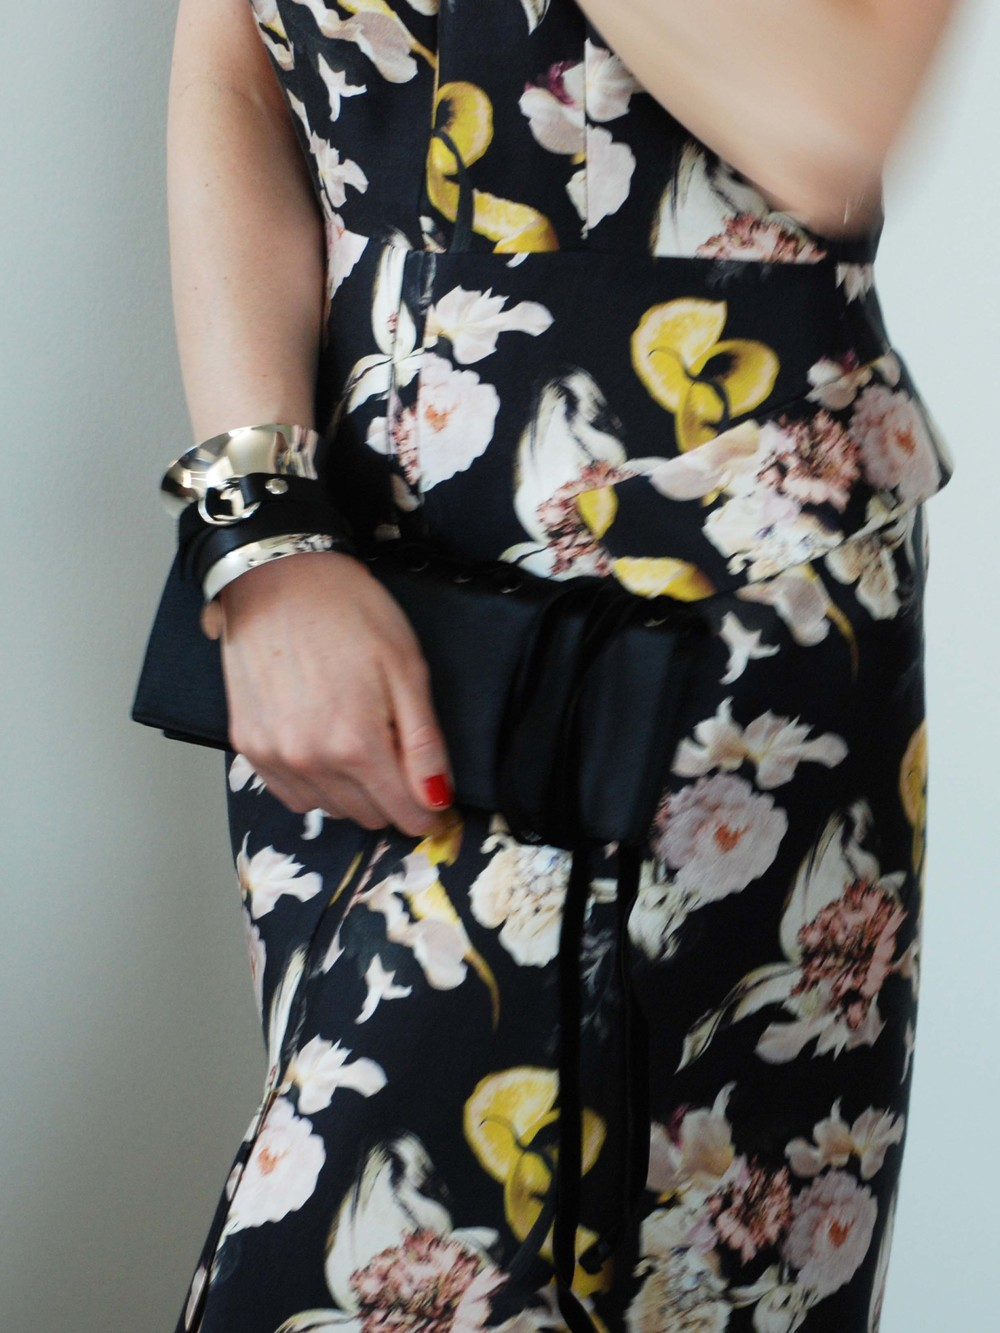 Ellery Dartagnan Dress with A-Line Skirt (Myer, $950AUD), Yves Saint Laurent Vintage Clutch (Ebay), Georg Jensen Cuff